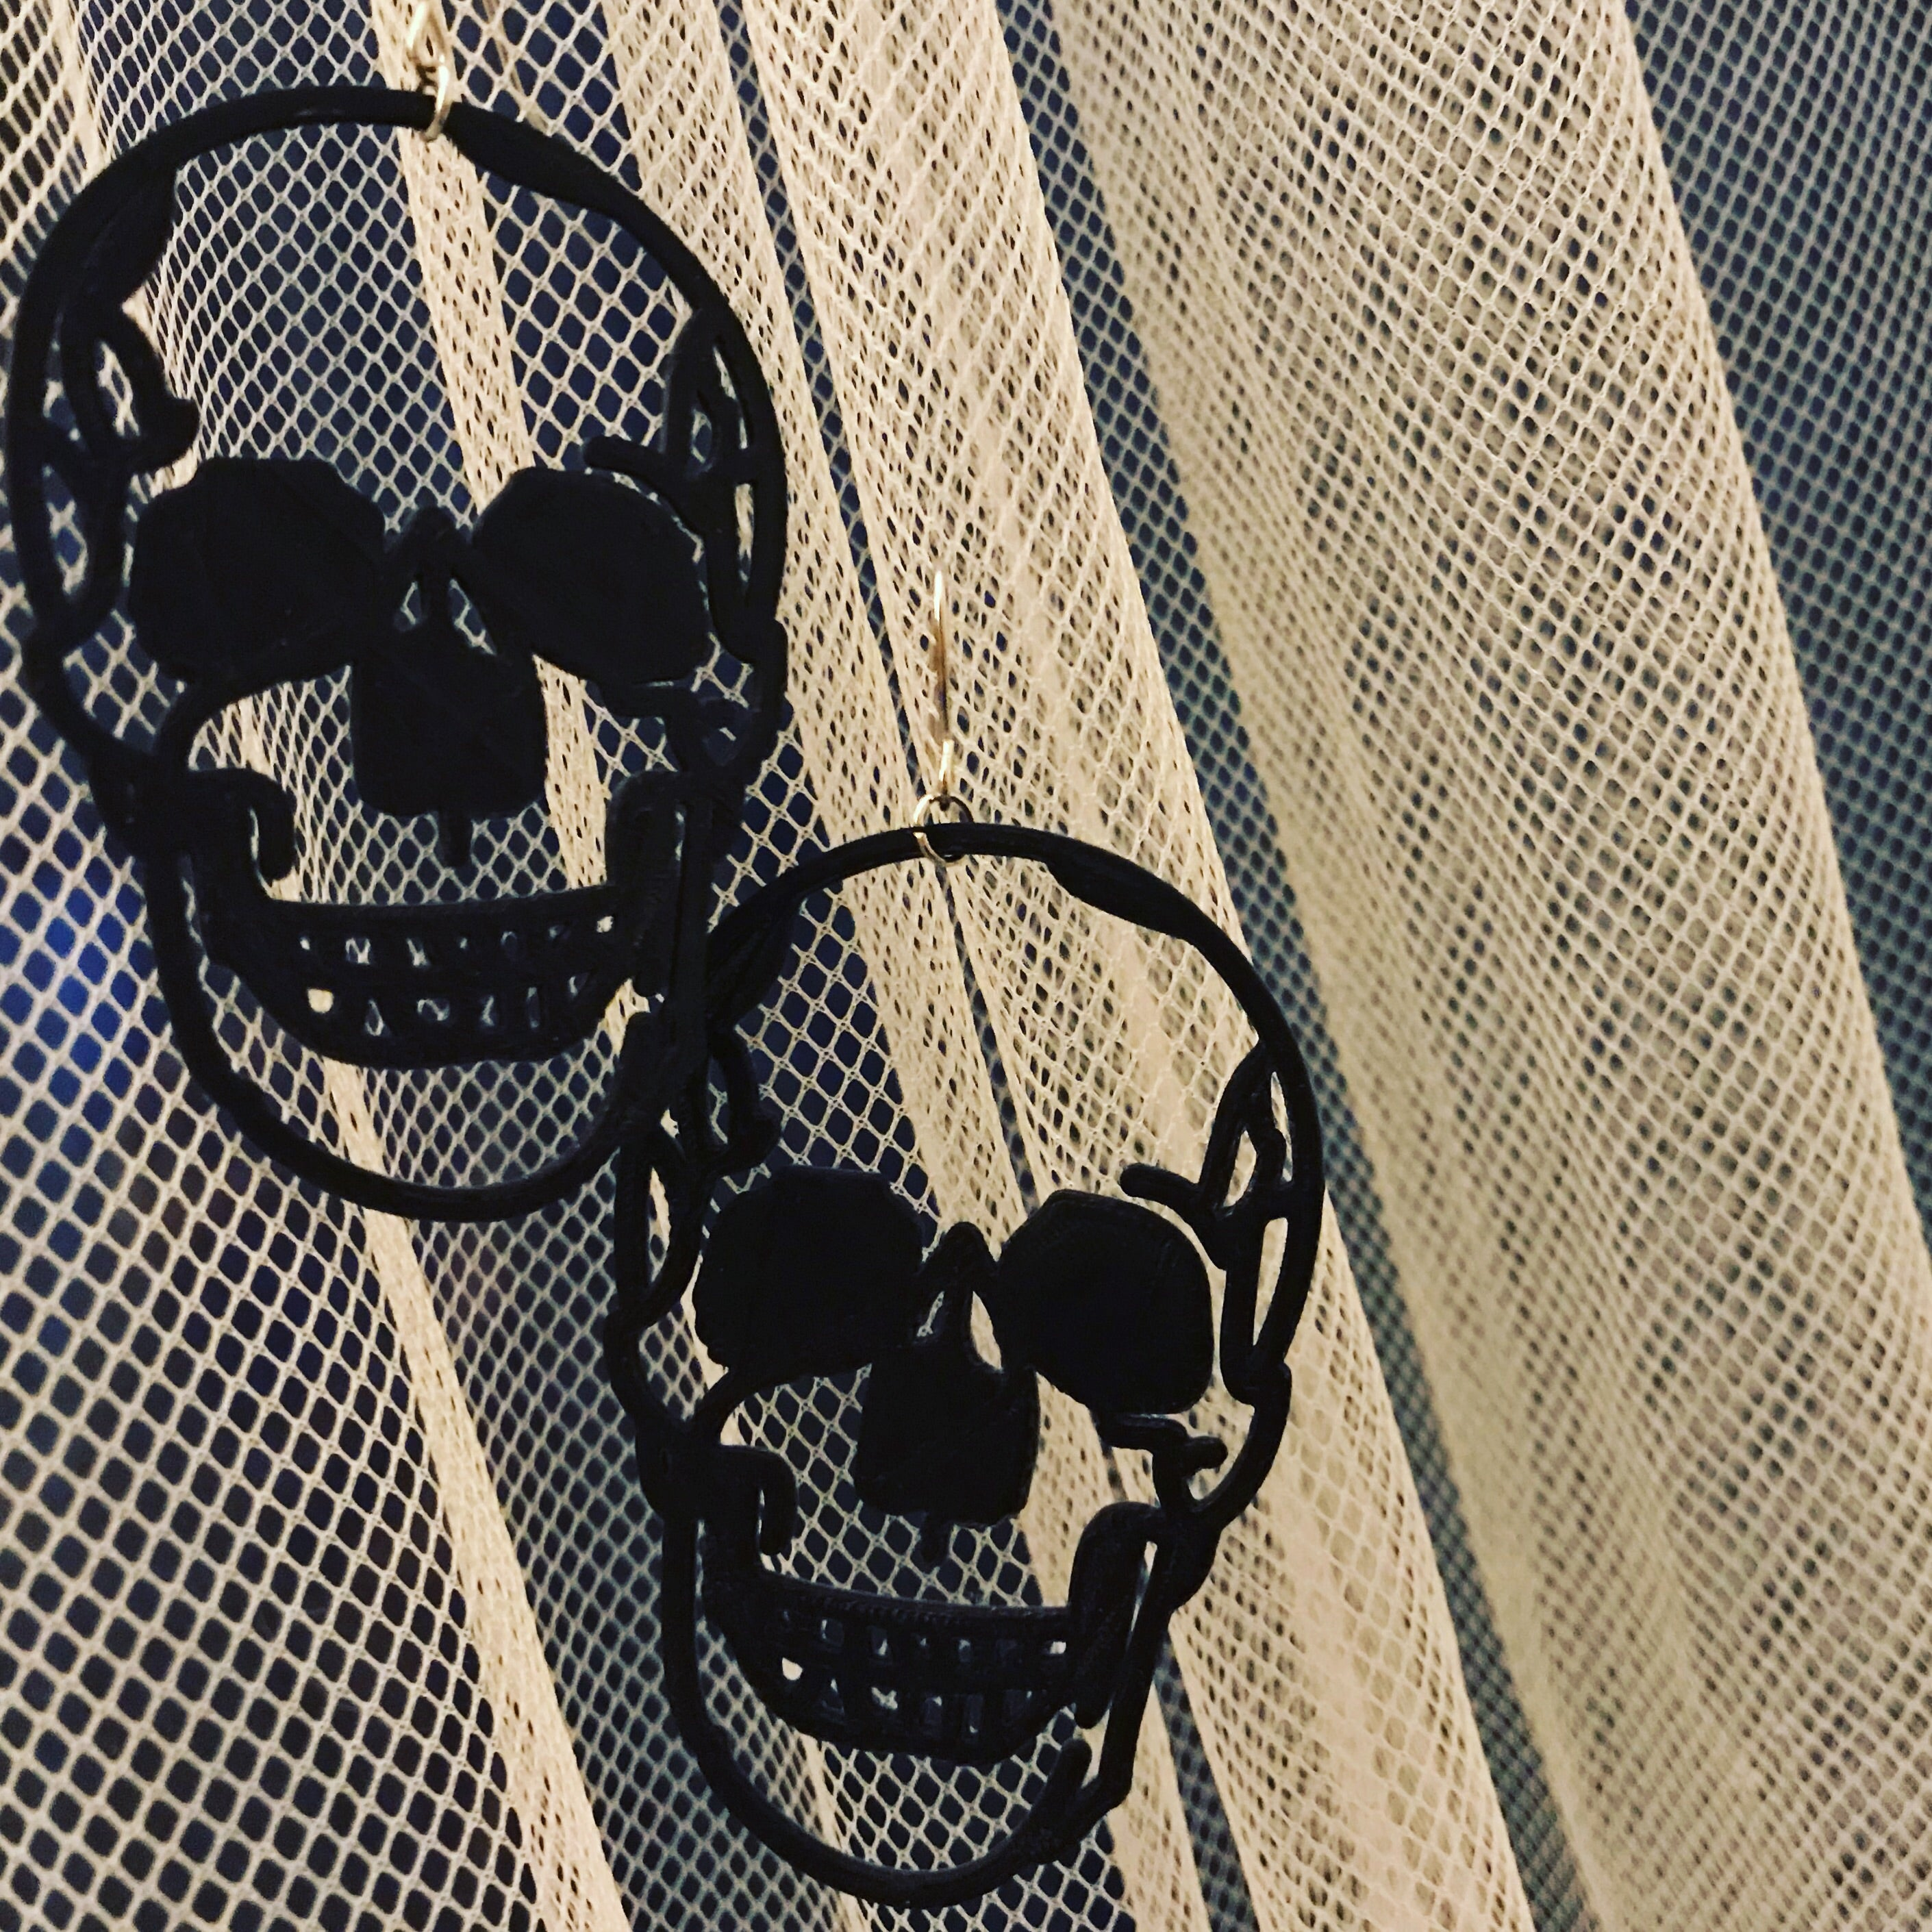 Two earrings are shown on thin, light curtains. The black earrings are shaped like human skulls and are realistic, edgy, and look like they could be smiling.